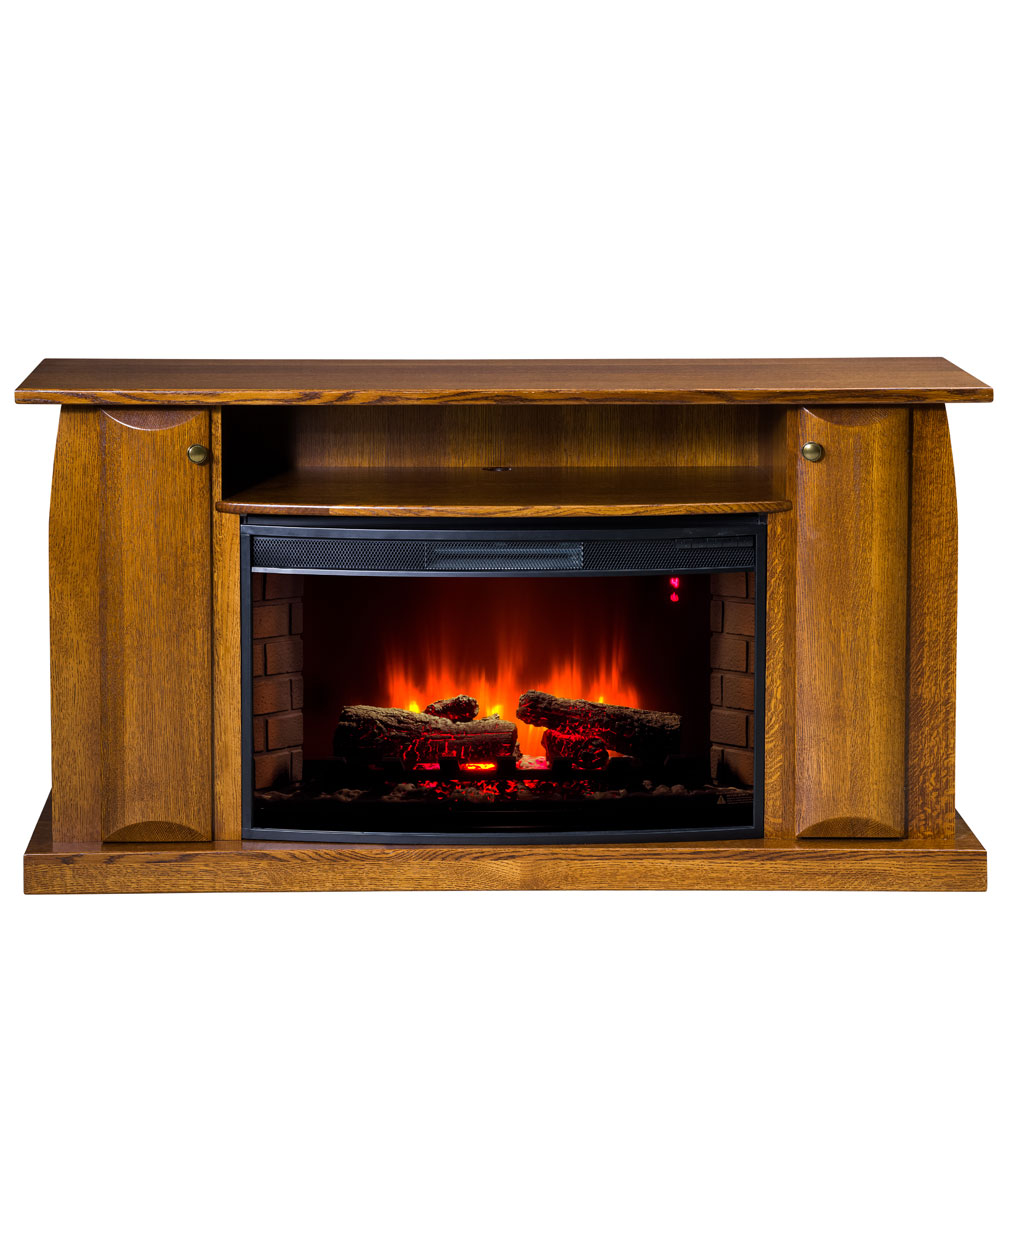 Shaker Fireplace New Shaker Tv Stand with Space Heater 402